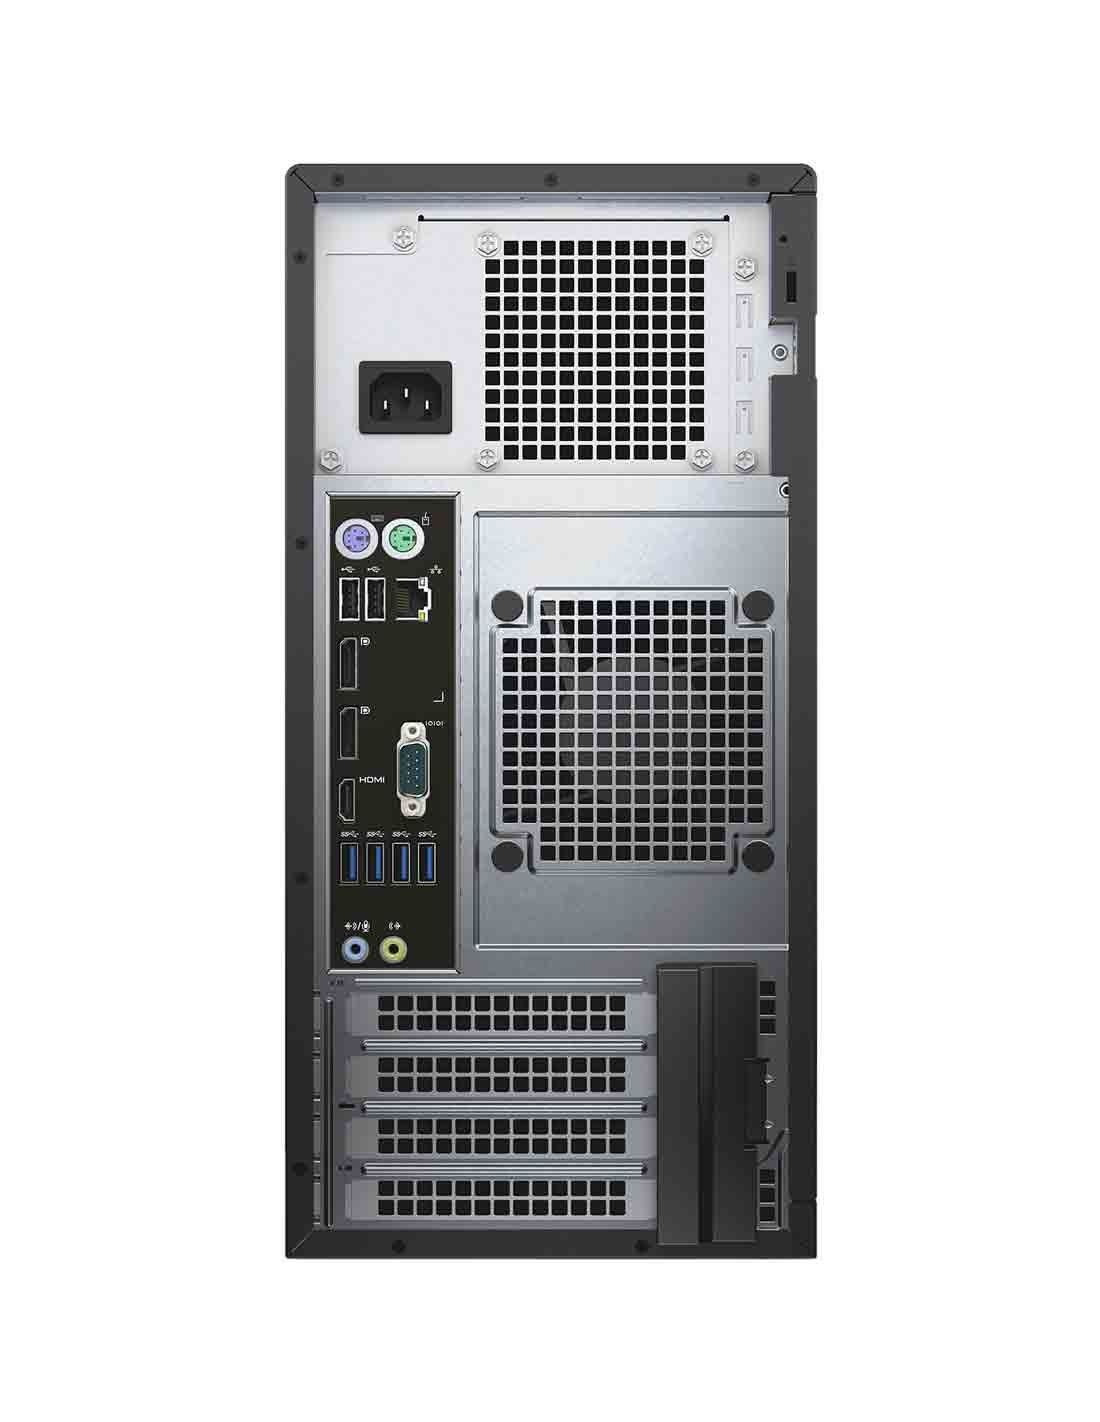 Dell Precision Tower 3620 images and photos in Dubai UAE